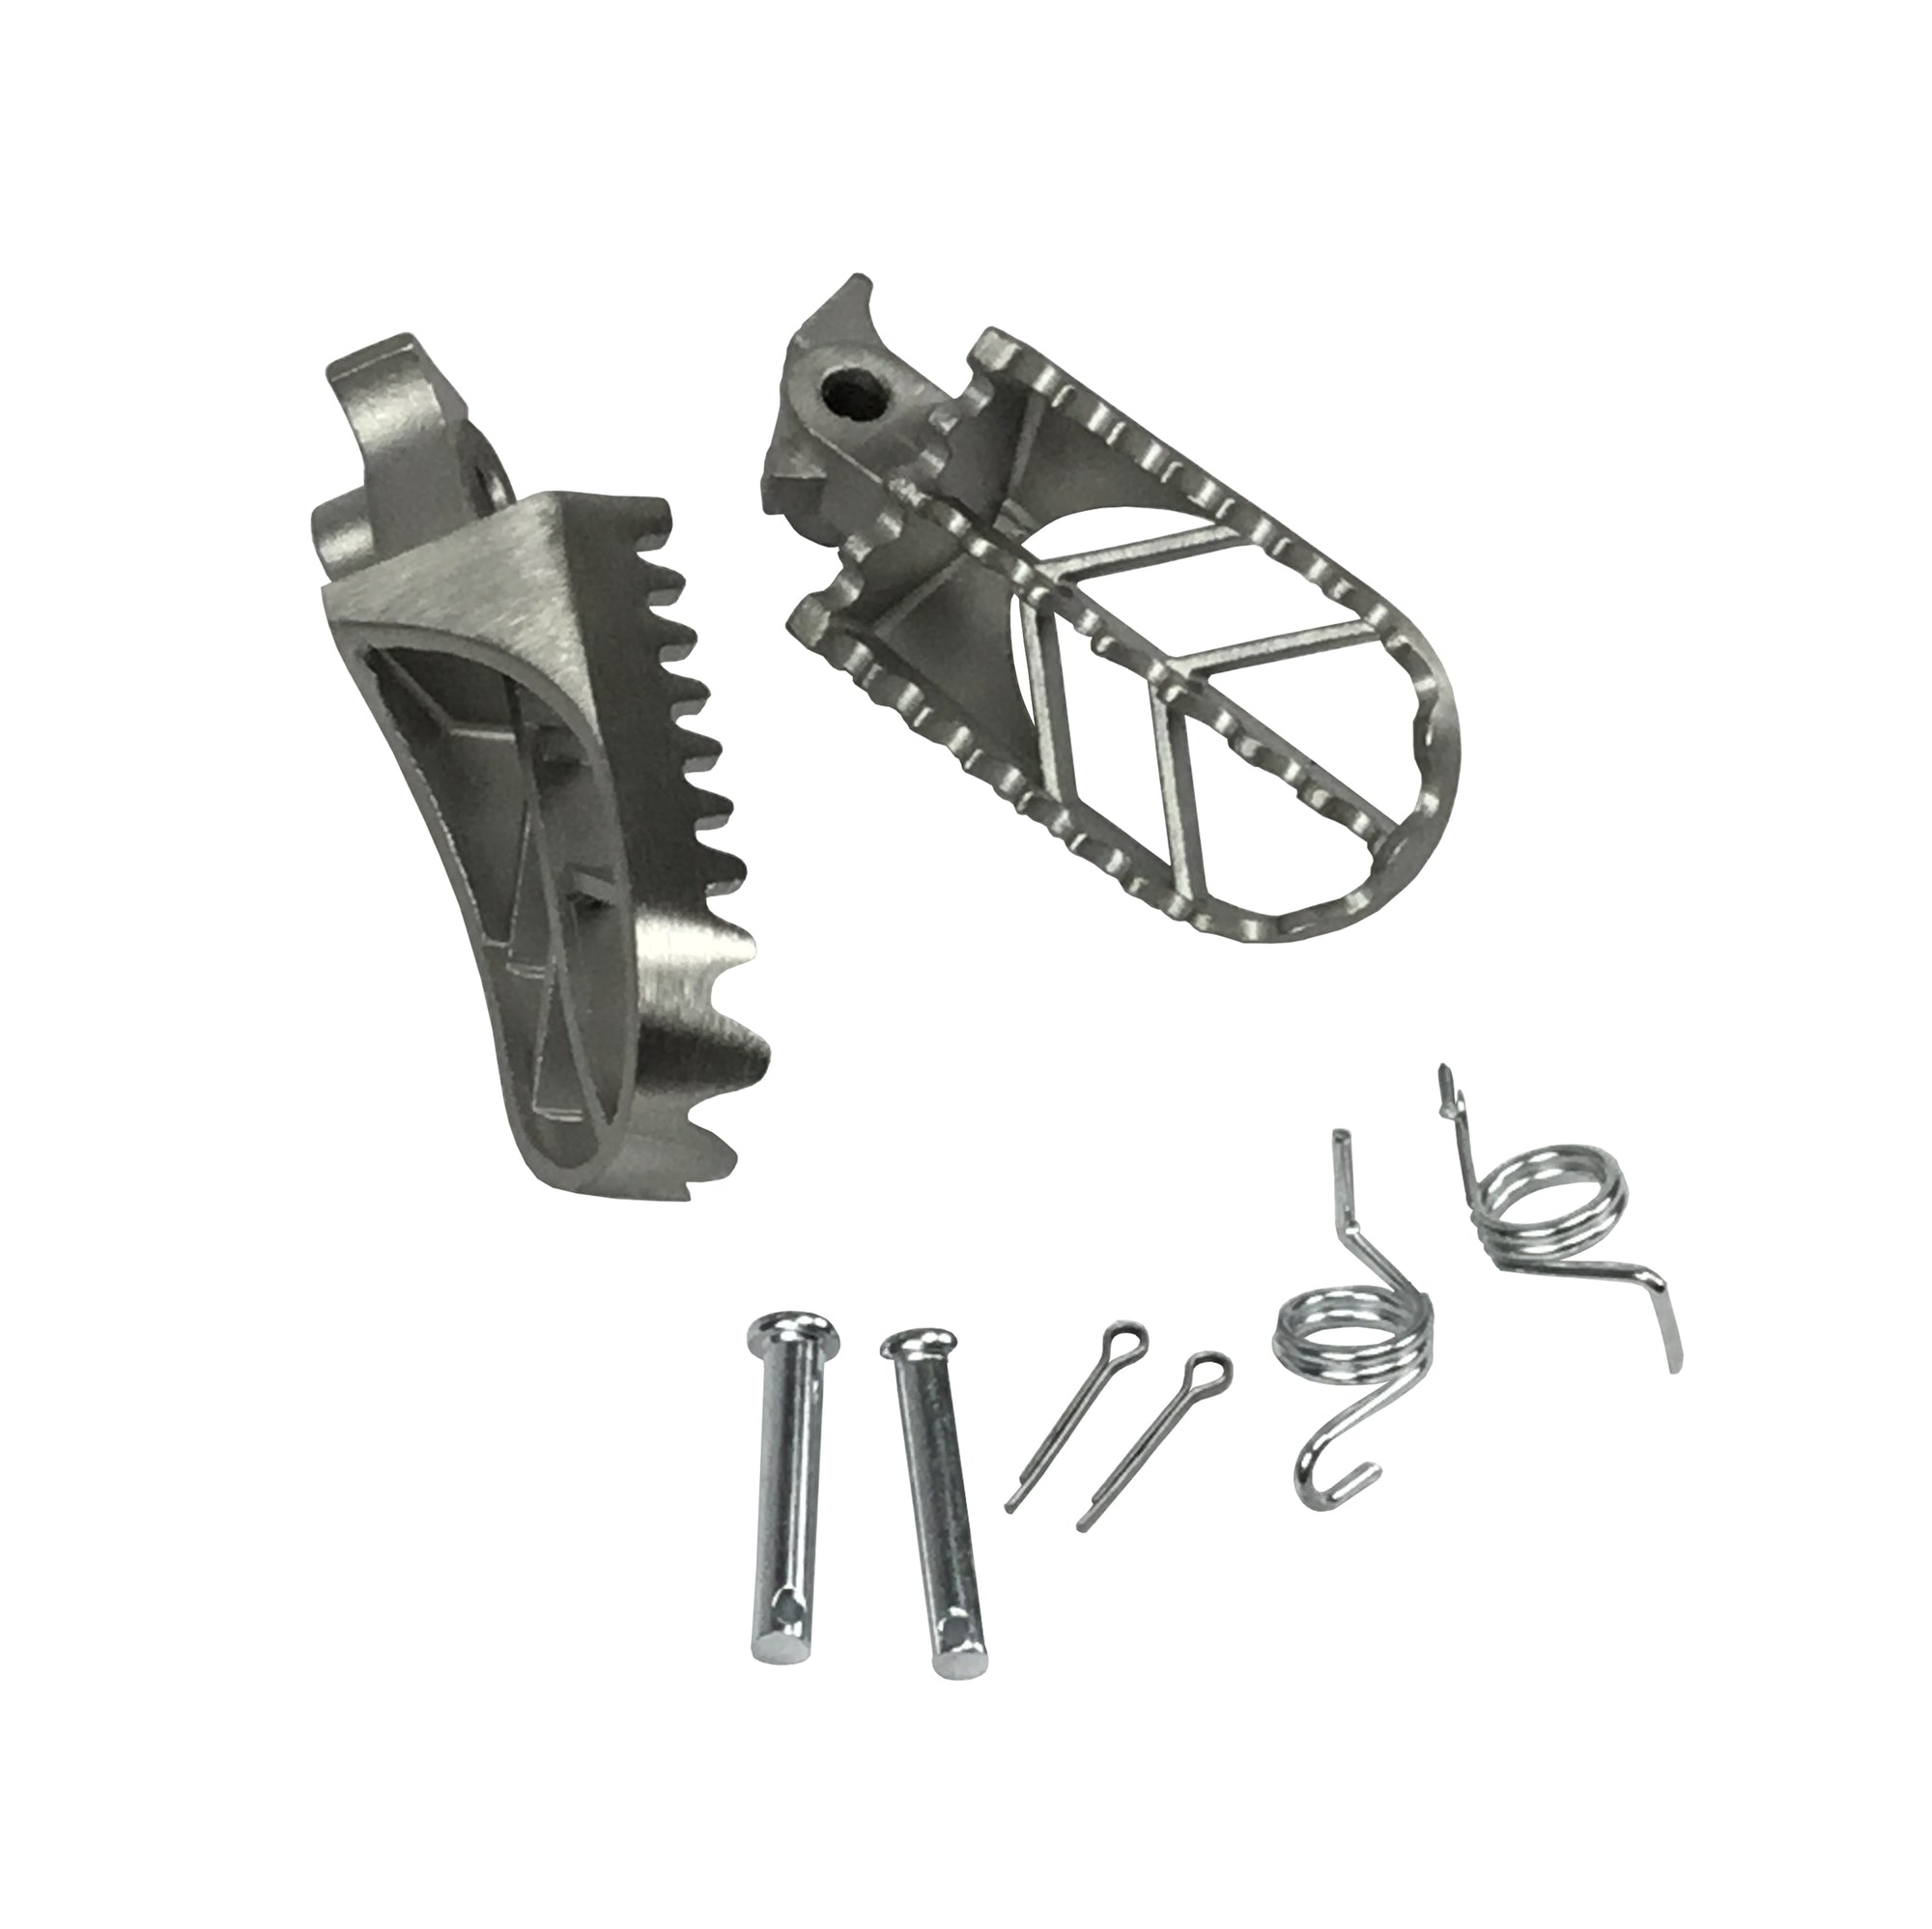 Surron/Segway Stainless Steel Footpegs - Electric Dirt Bikes